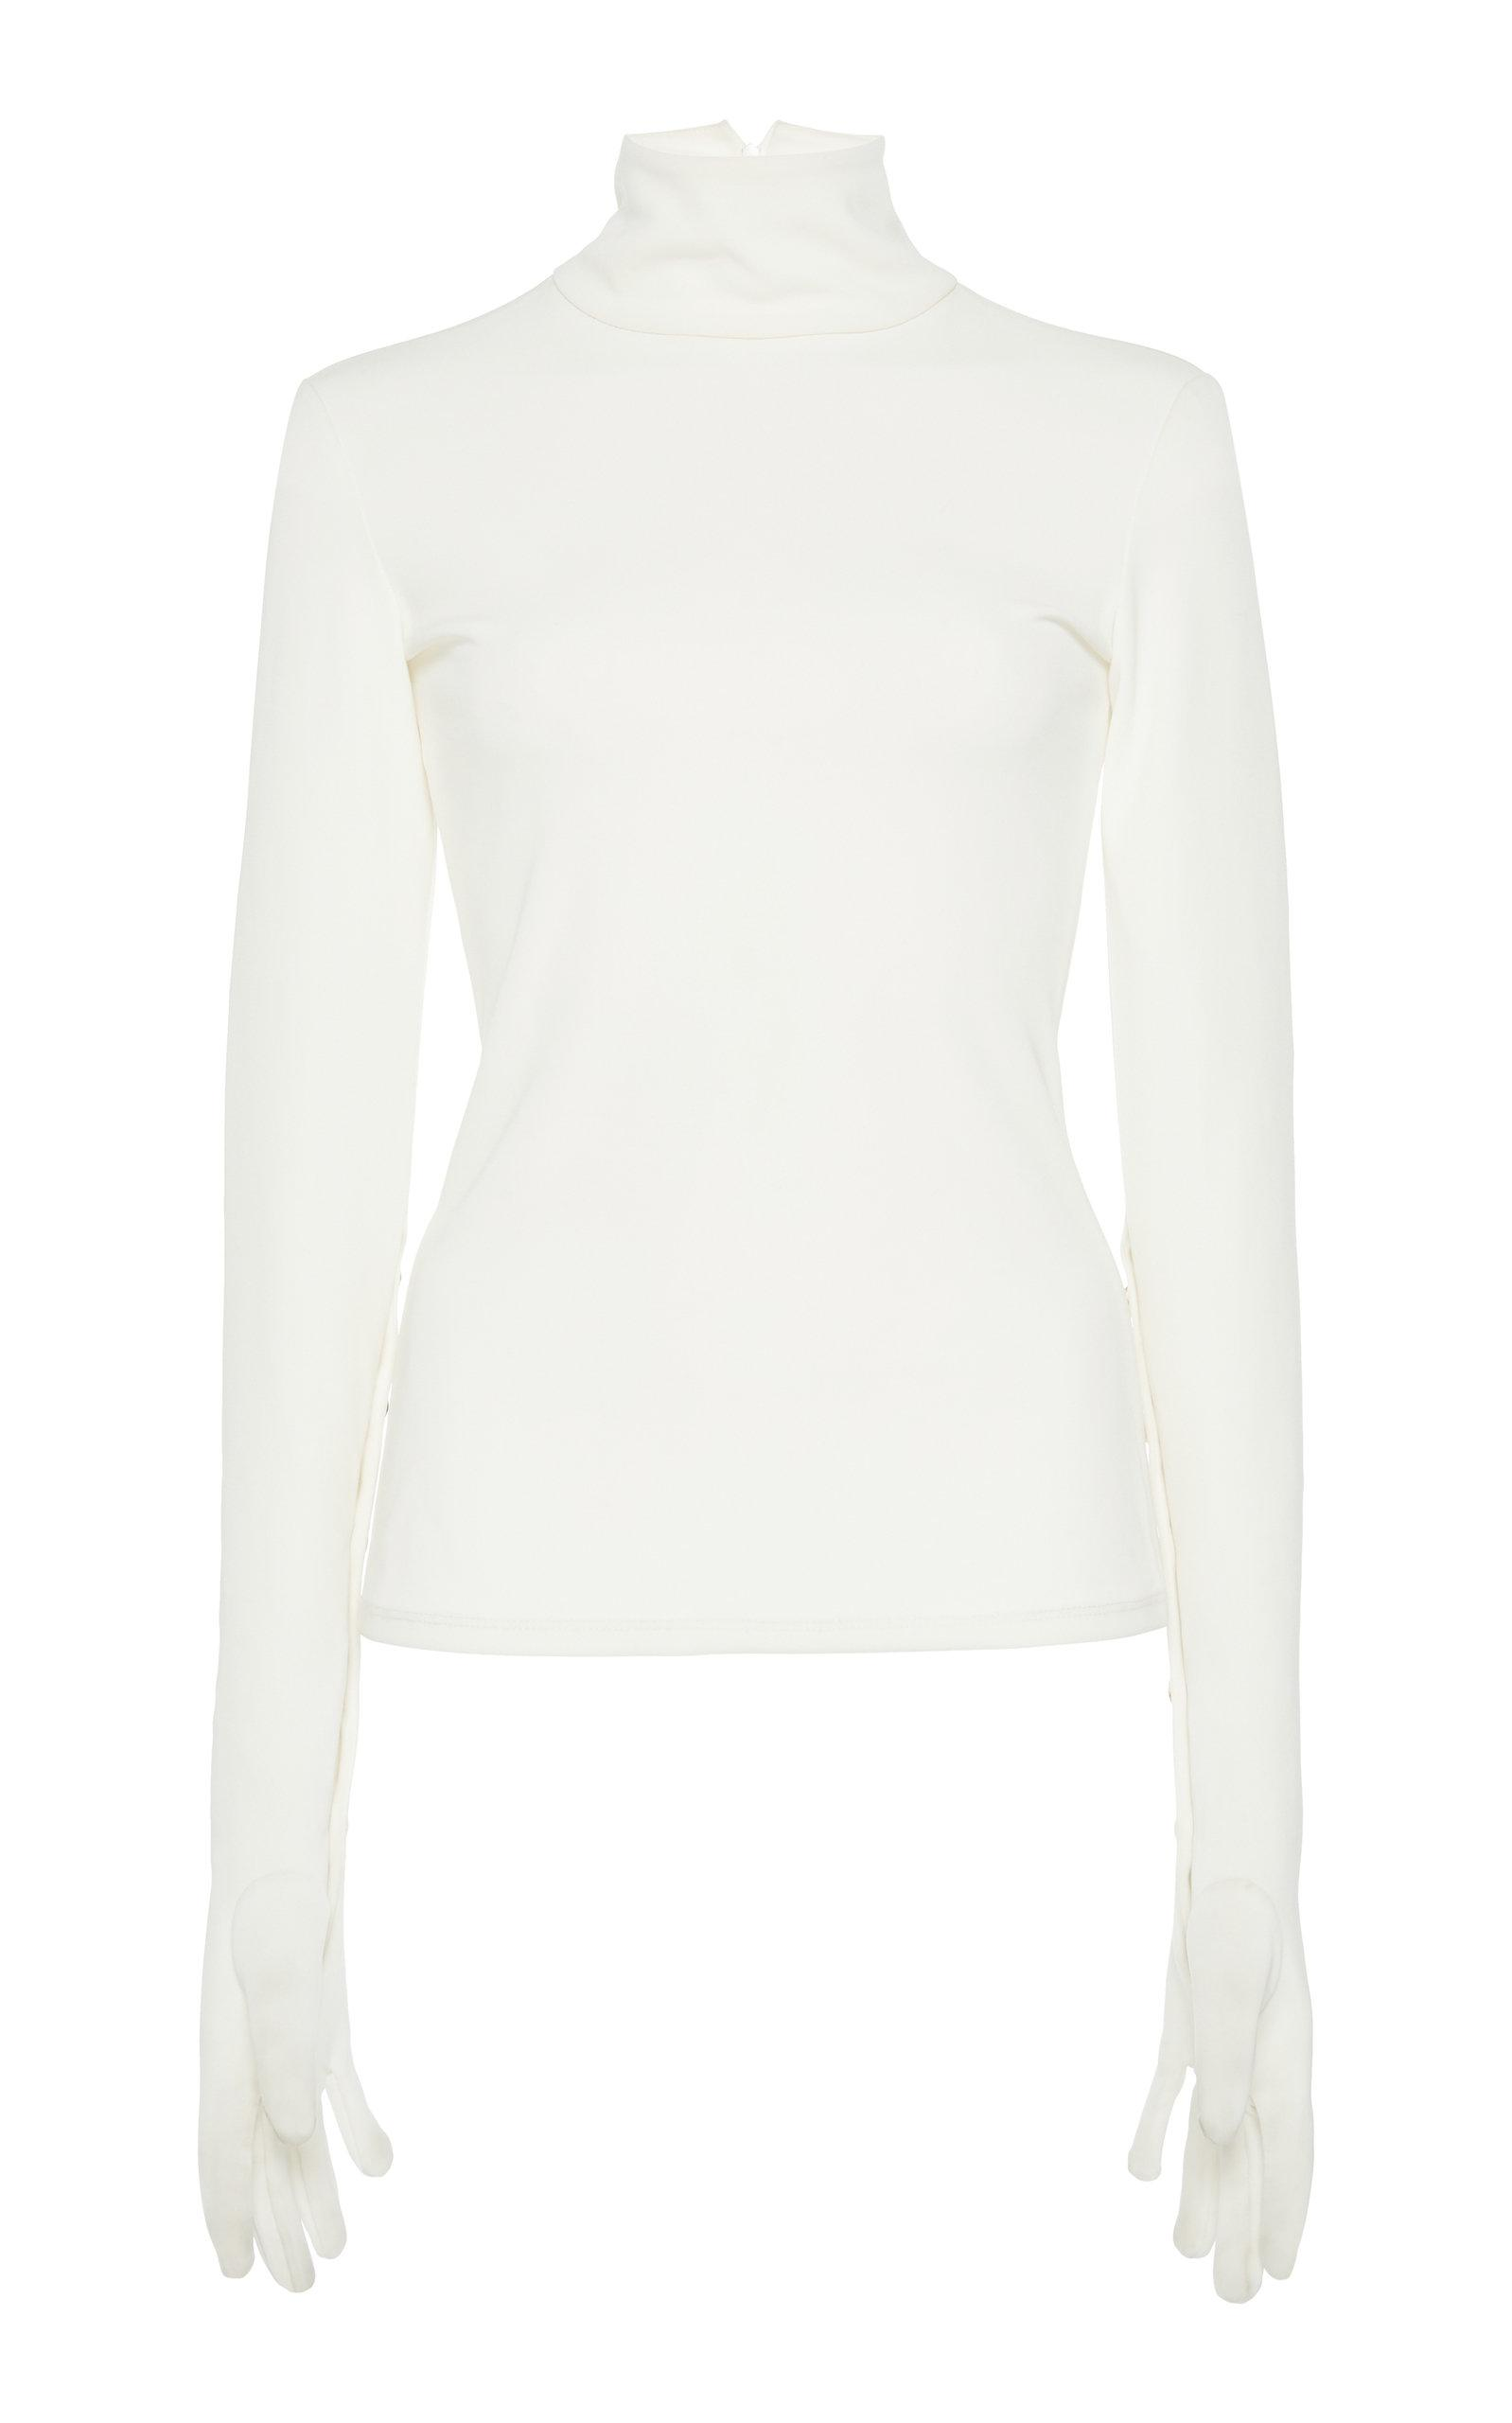 A.w.a.k.e. Gloved Turtleneck Top In White